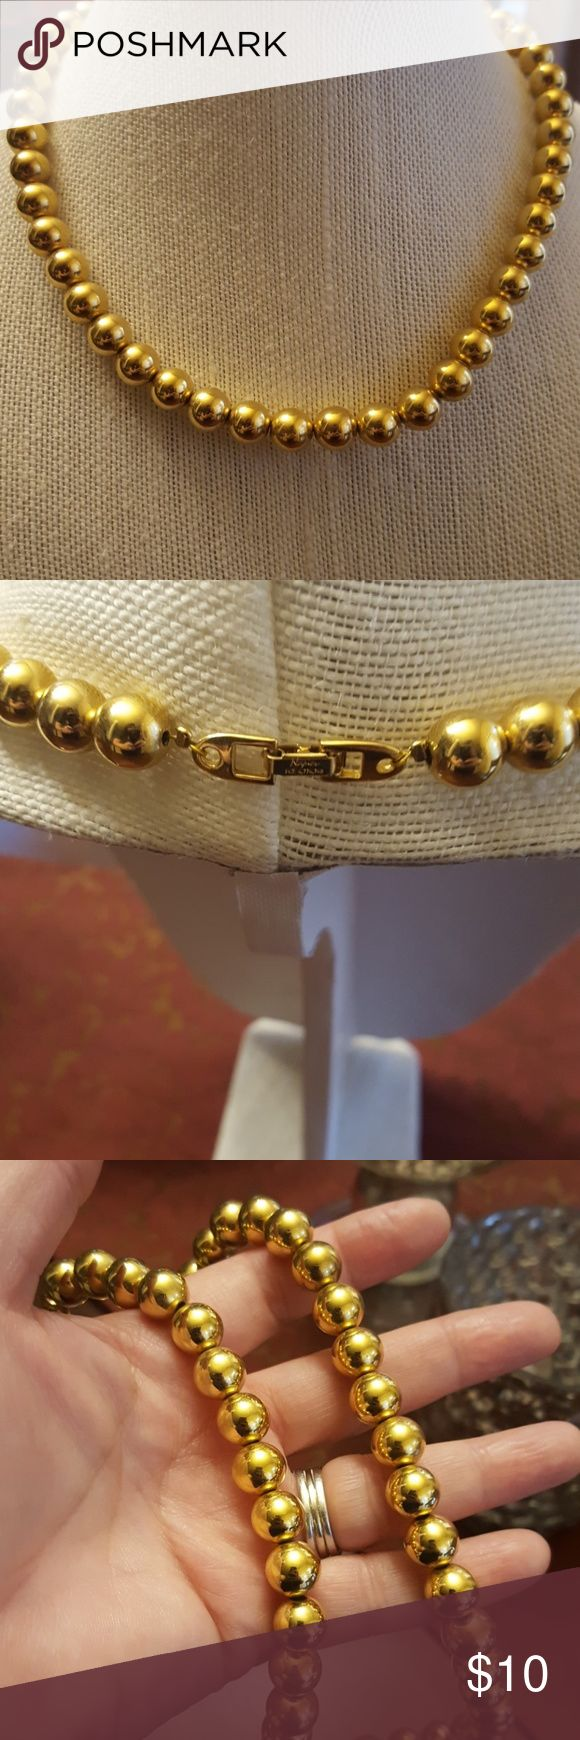 """NAPIER NECKLACE This is a gold toned Napier Necklace with large beads.  It's 18"""" and in mint condition.  Signed on the clasp. Napier Jewelry Necklaces"""